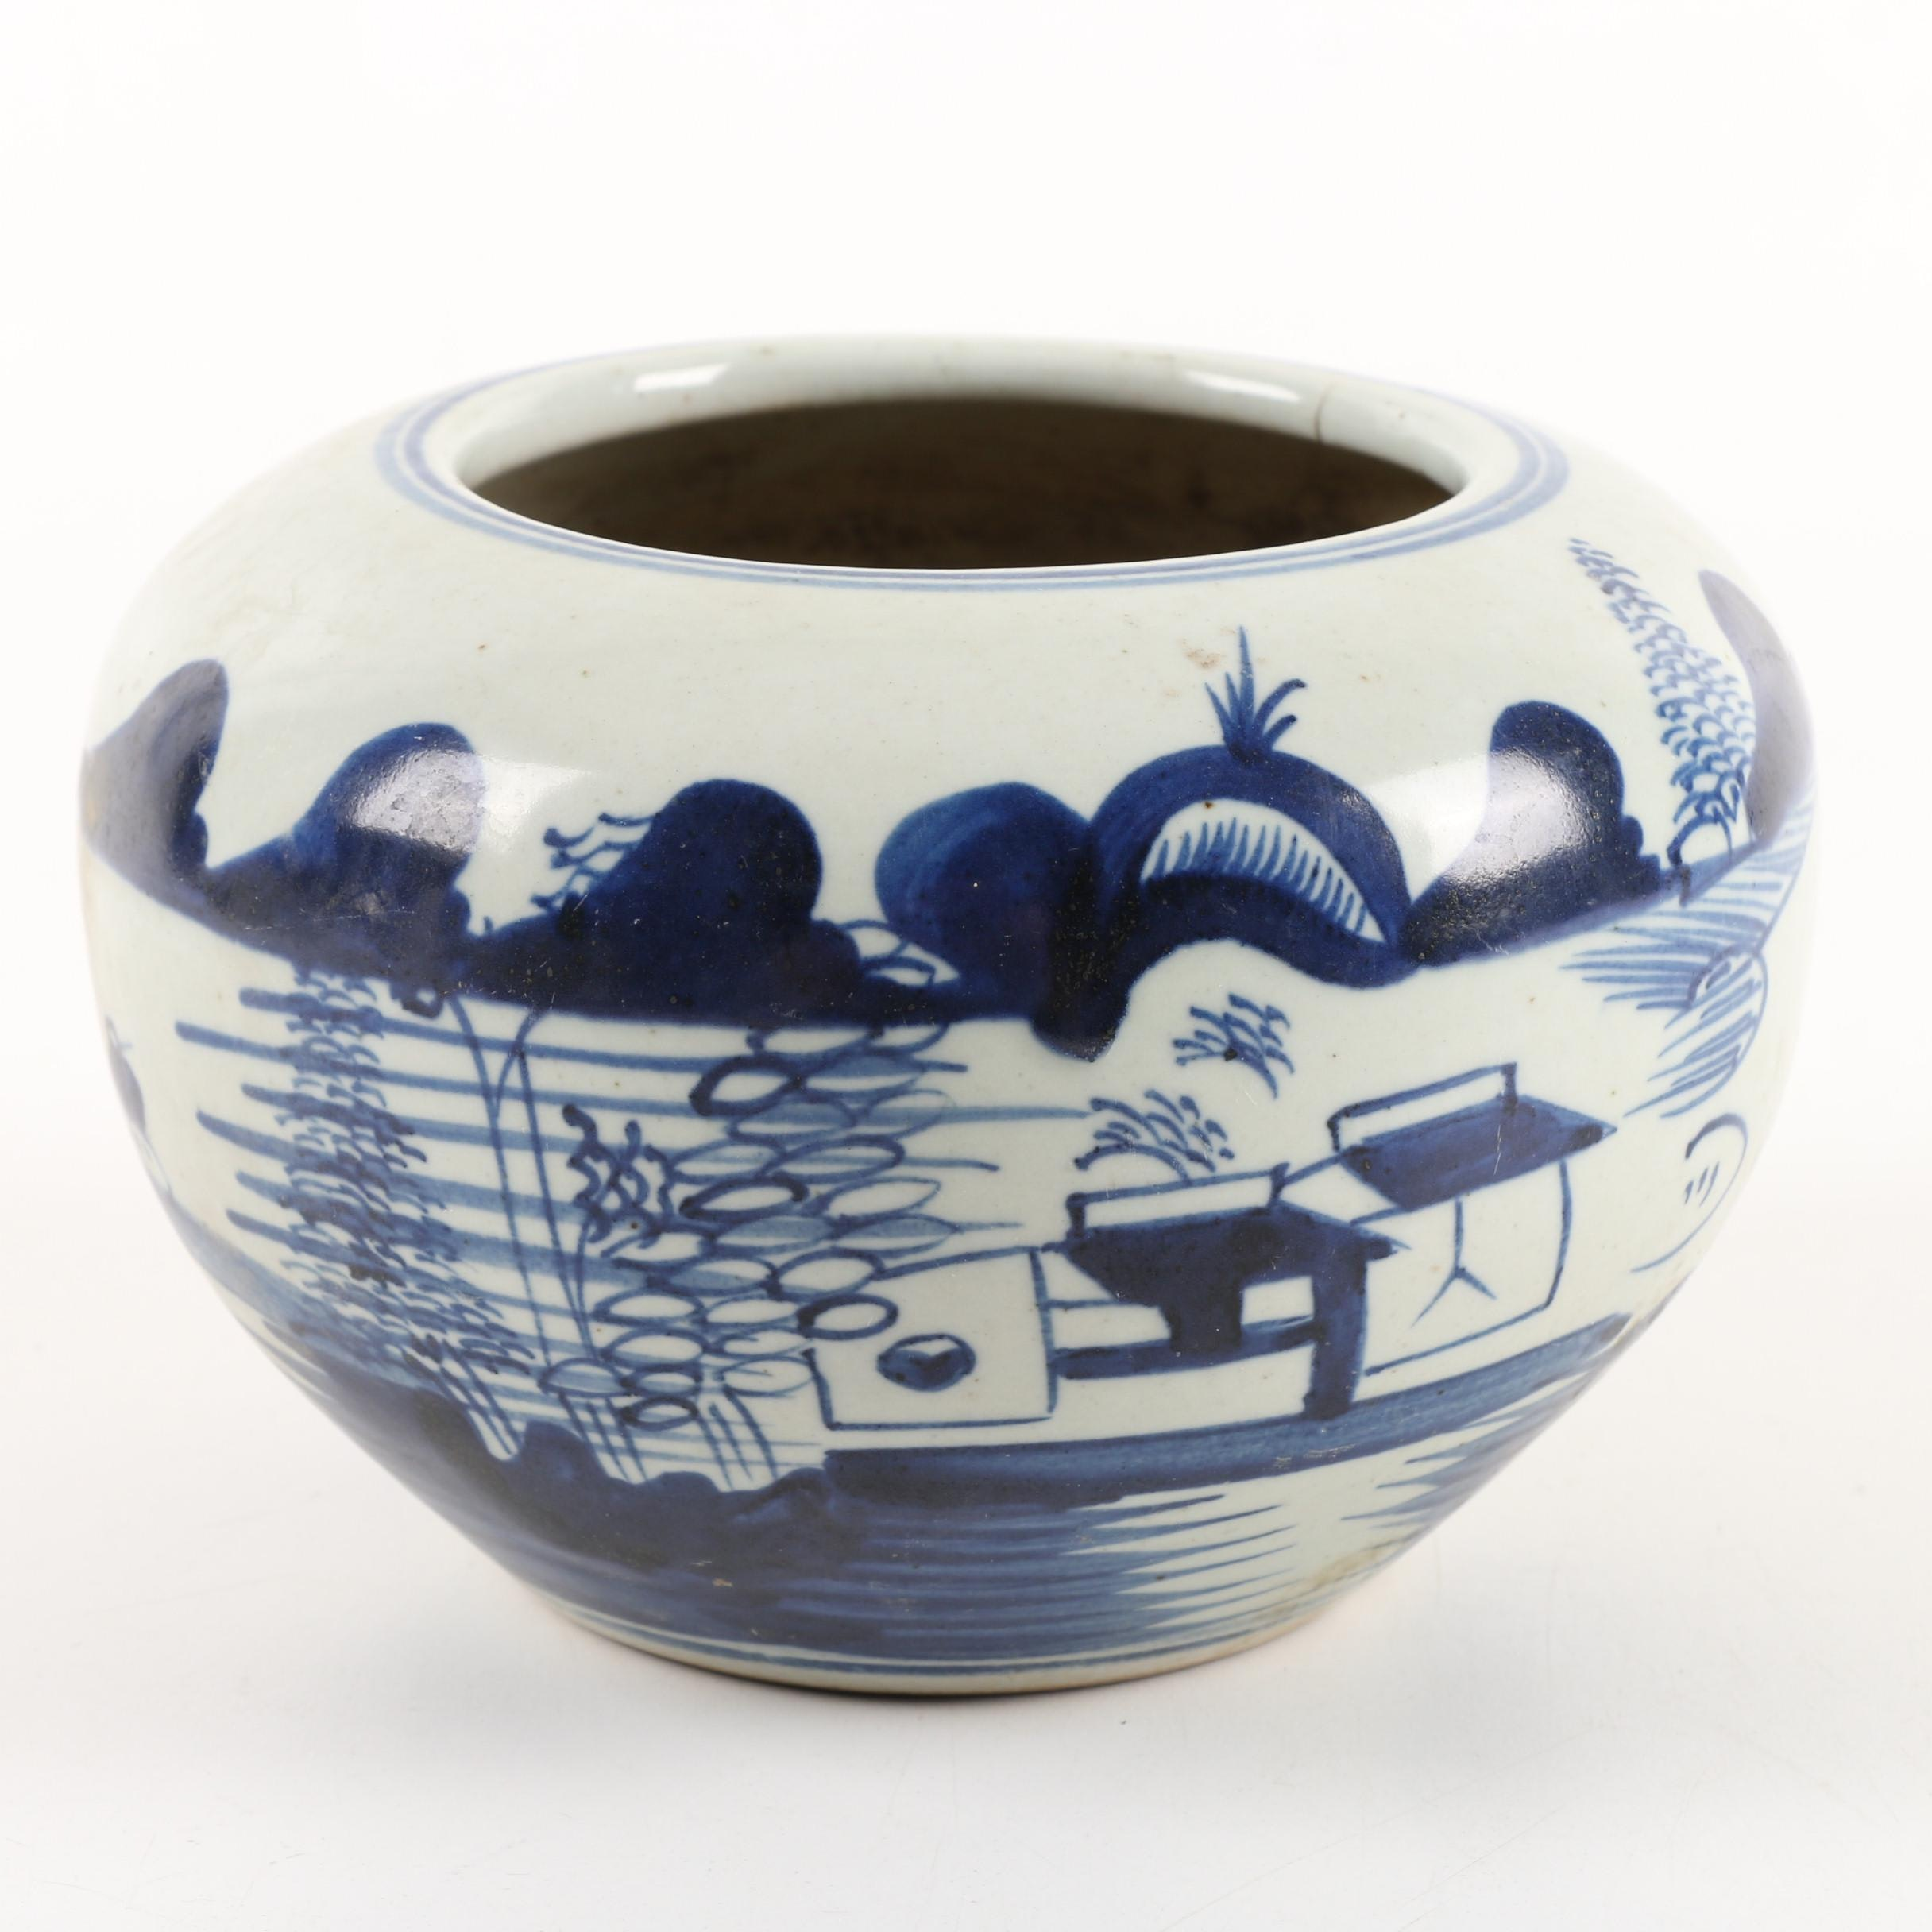 Chinese Hand-Painted Landscape Ceramic Planter